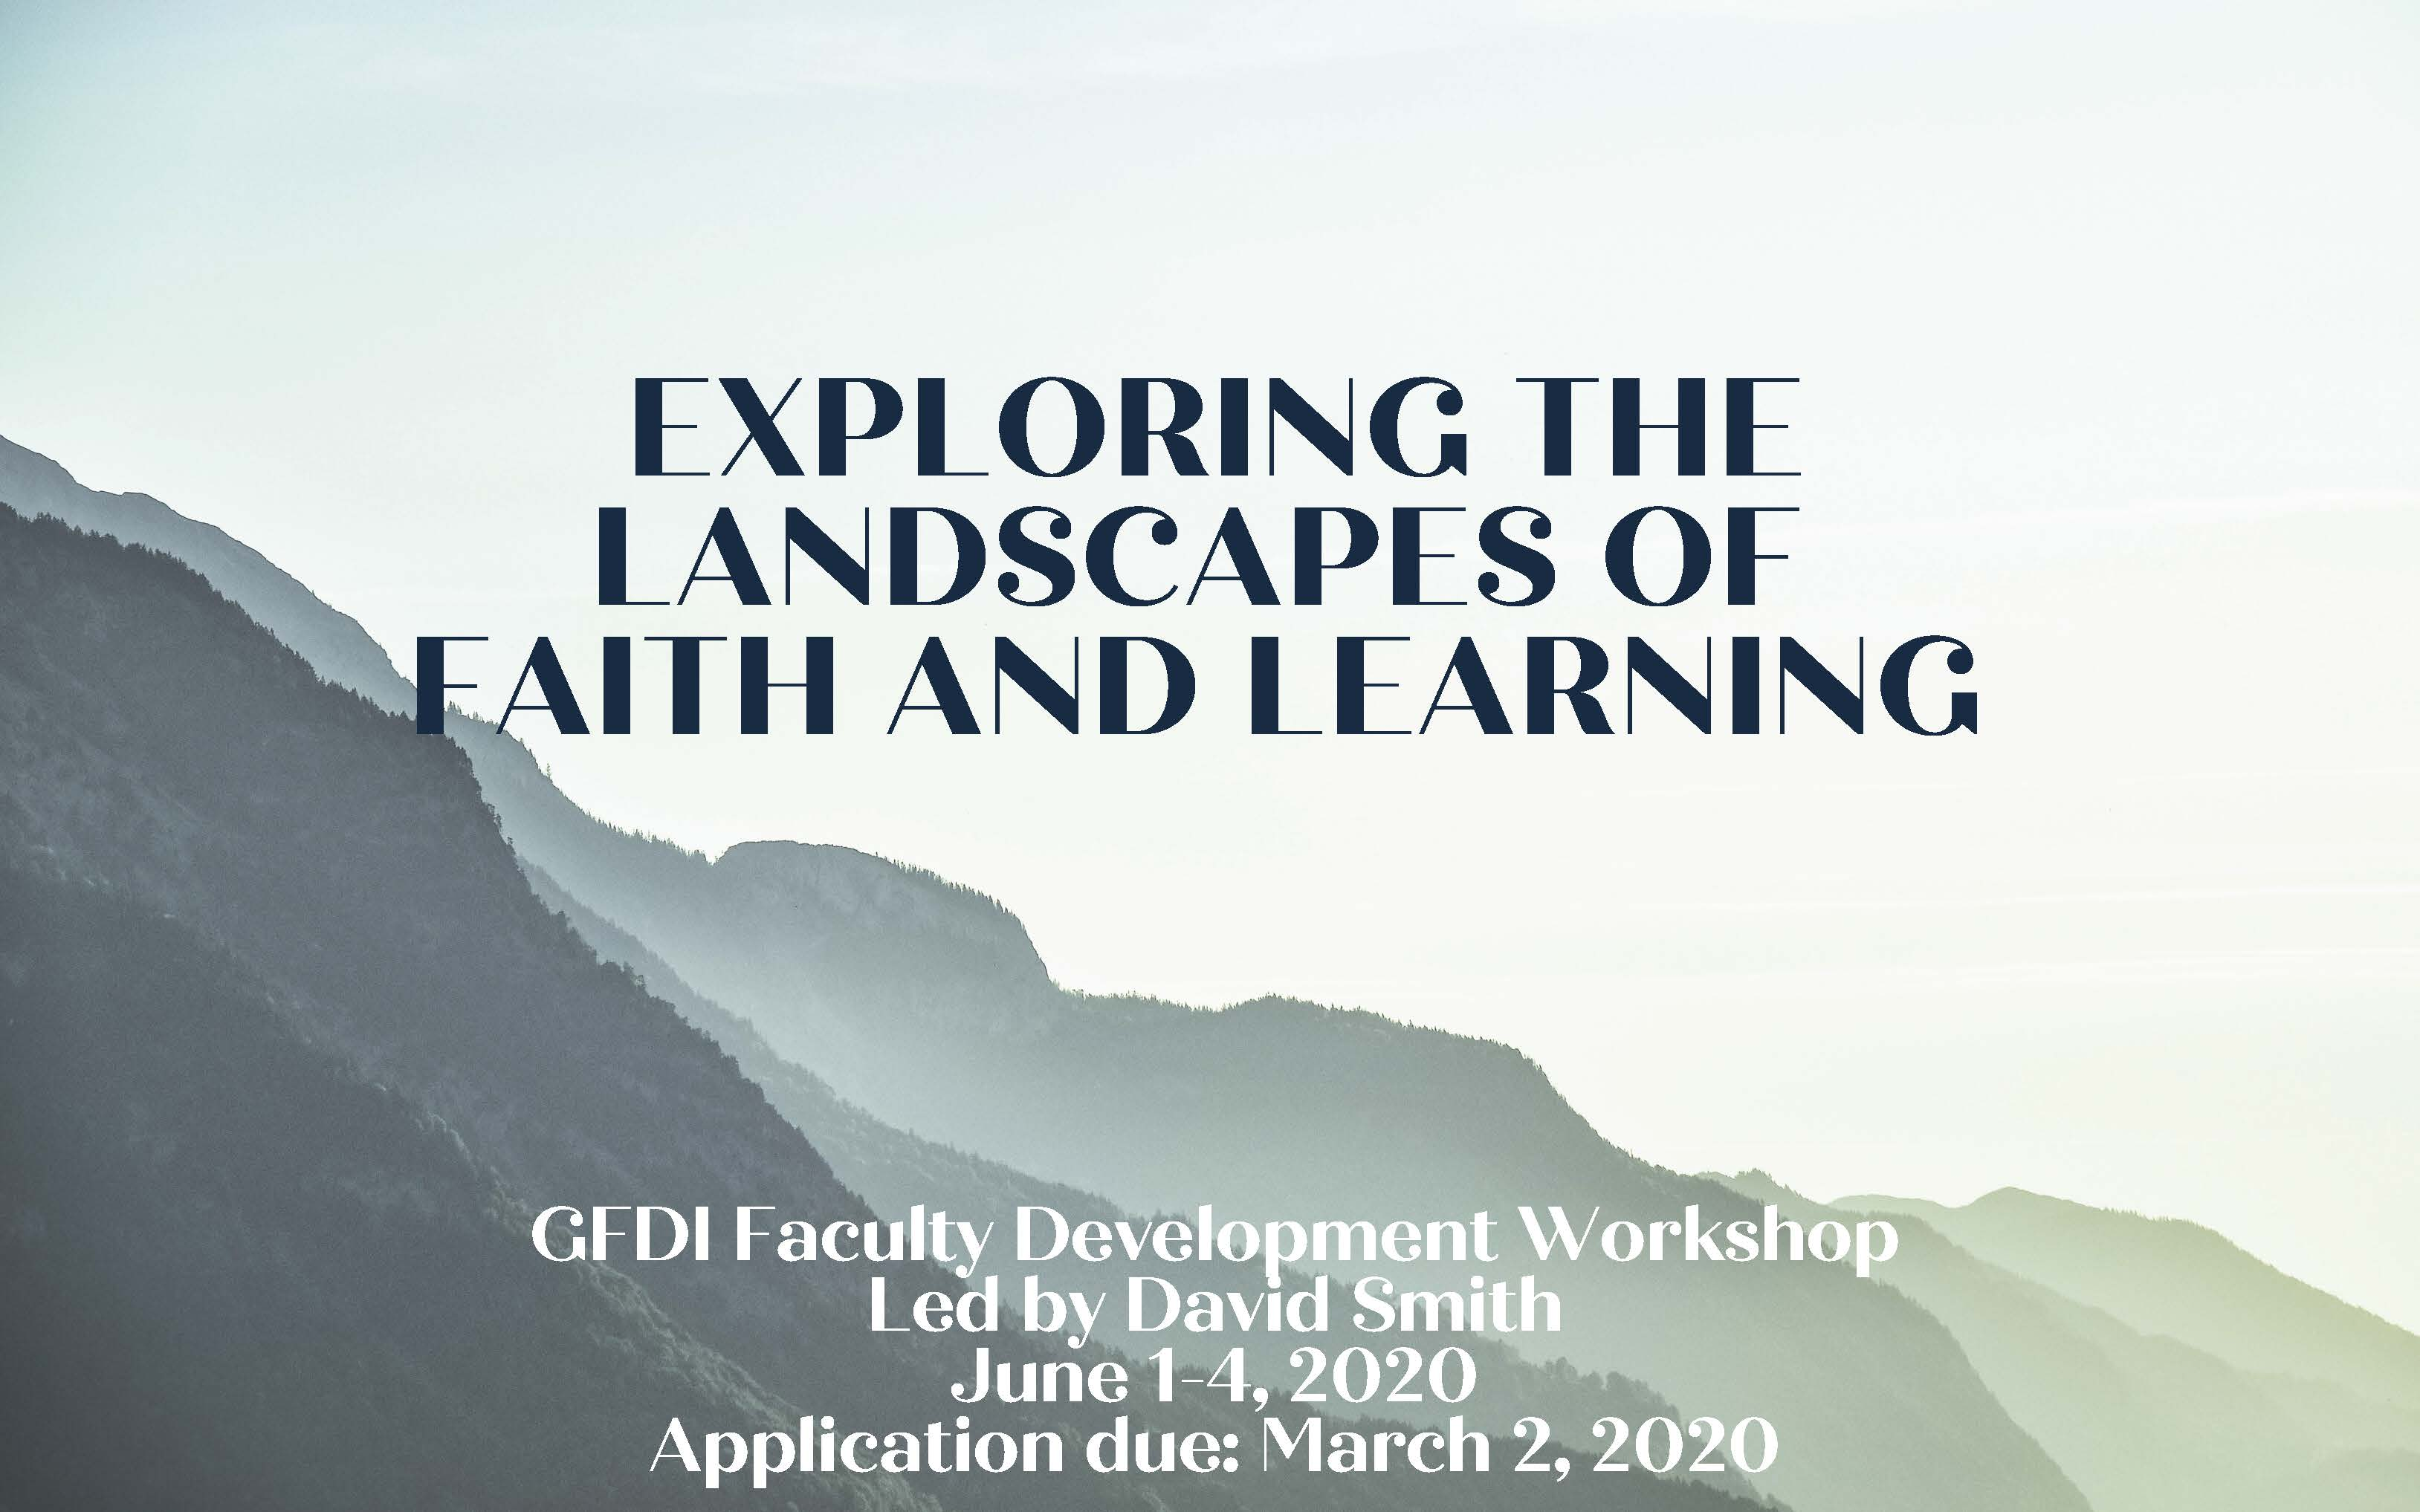 Landscapes of Faith and Learning